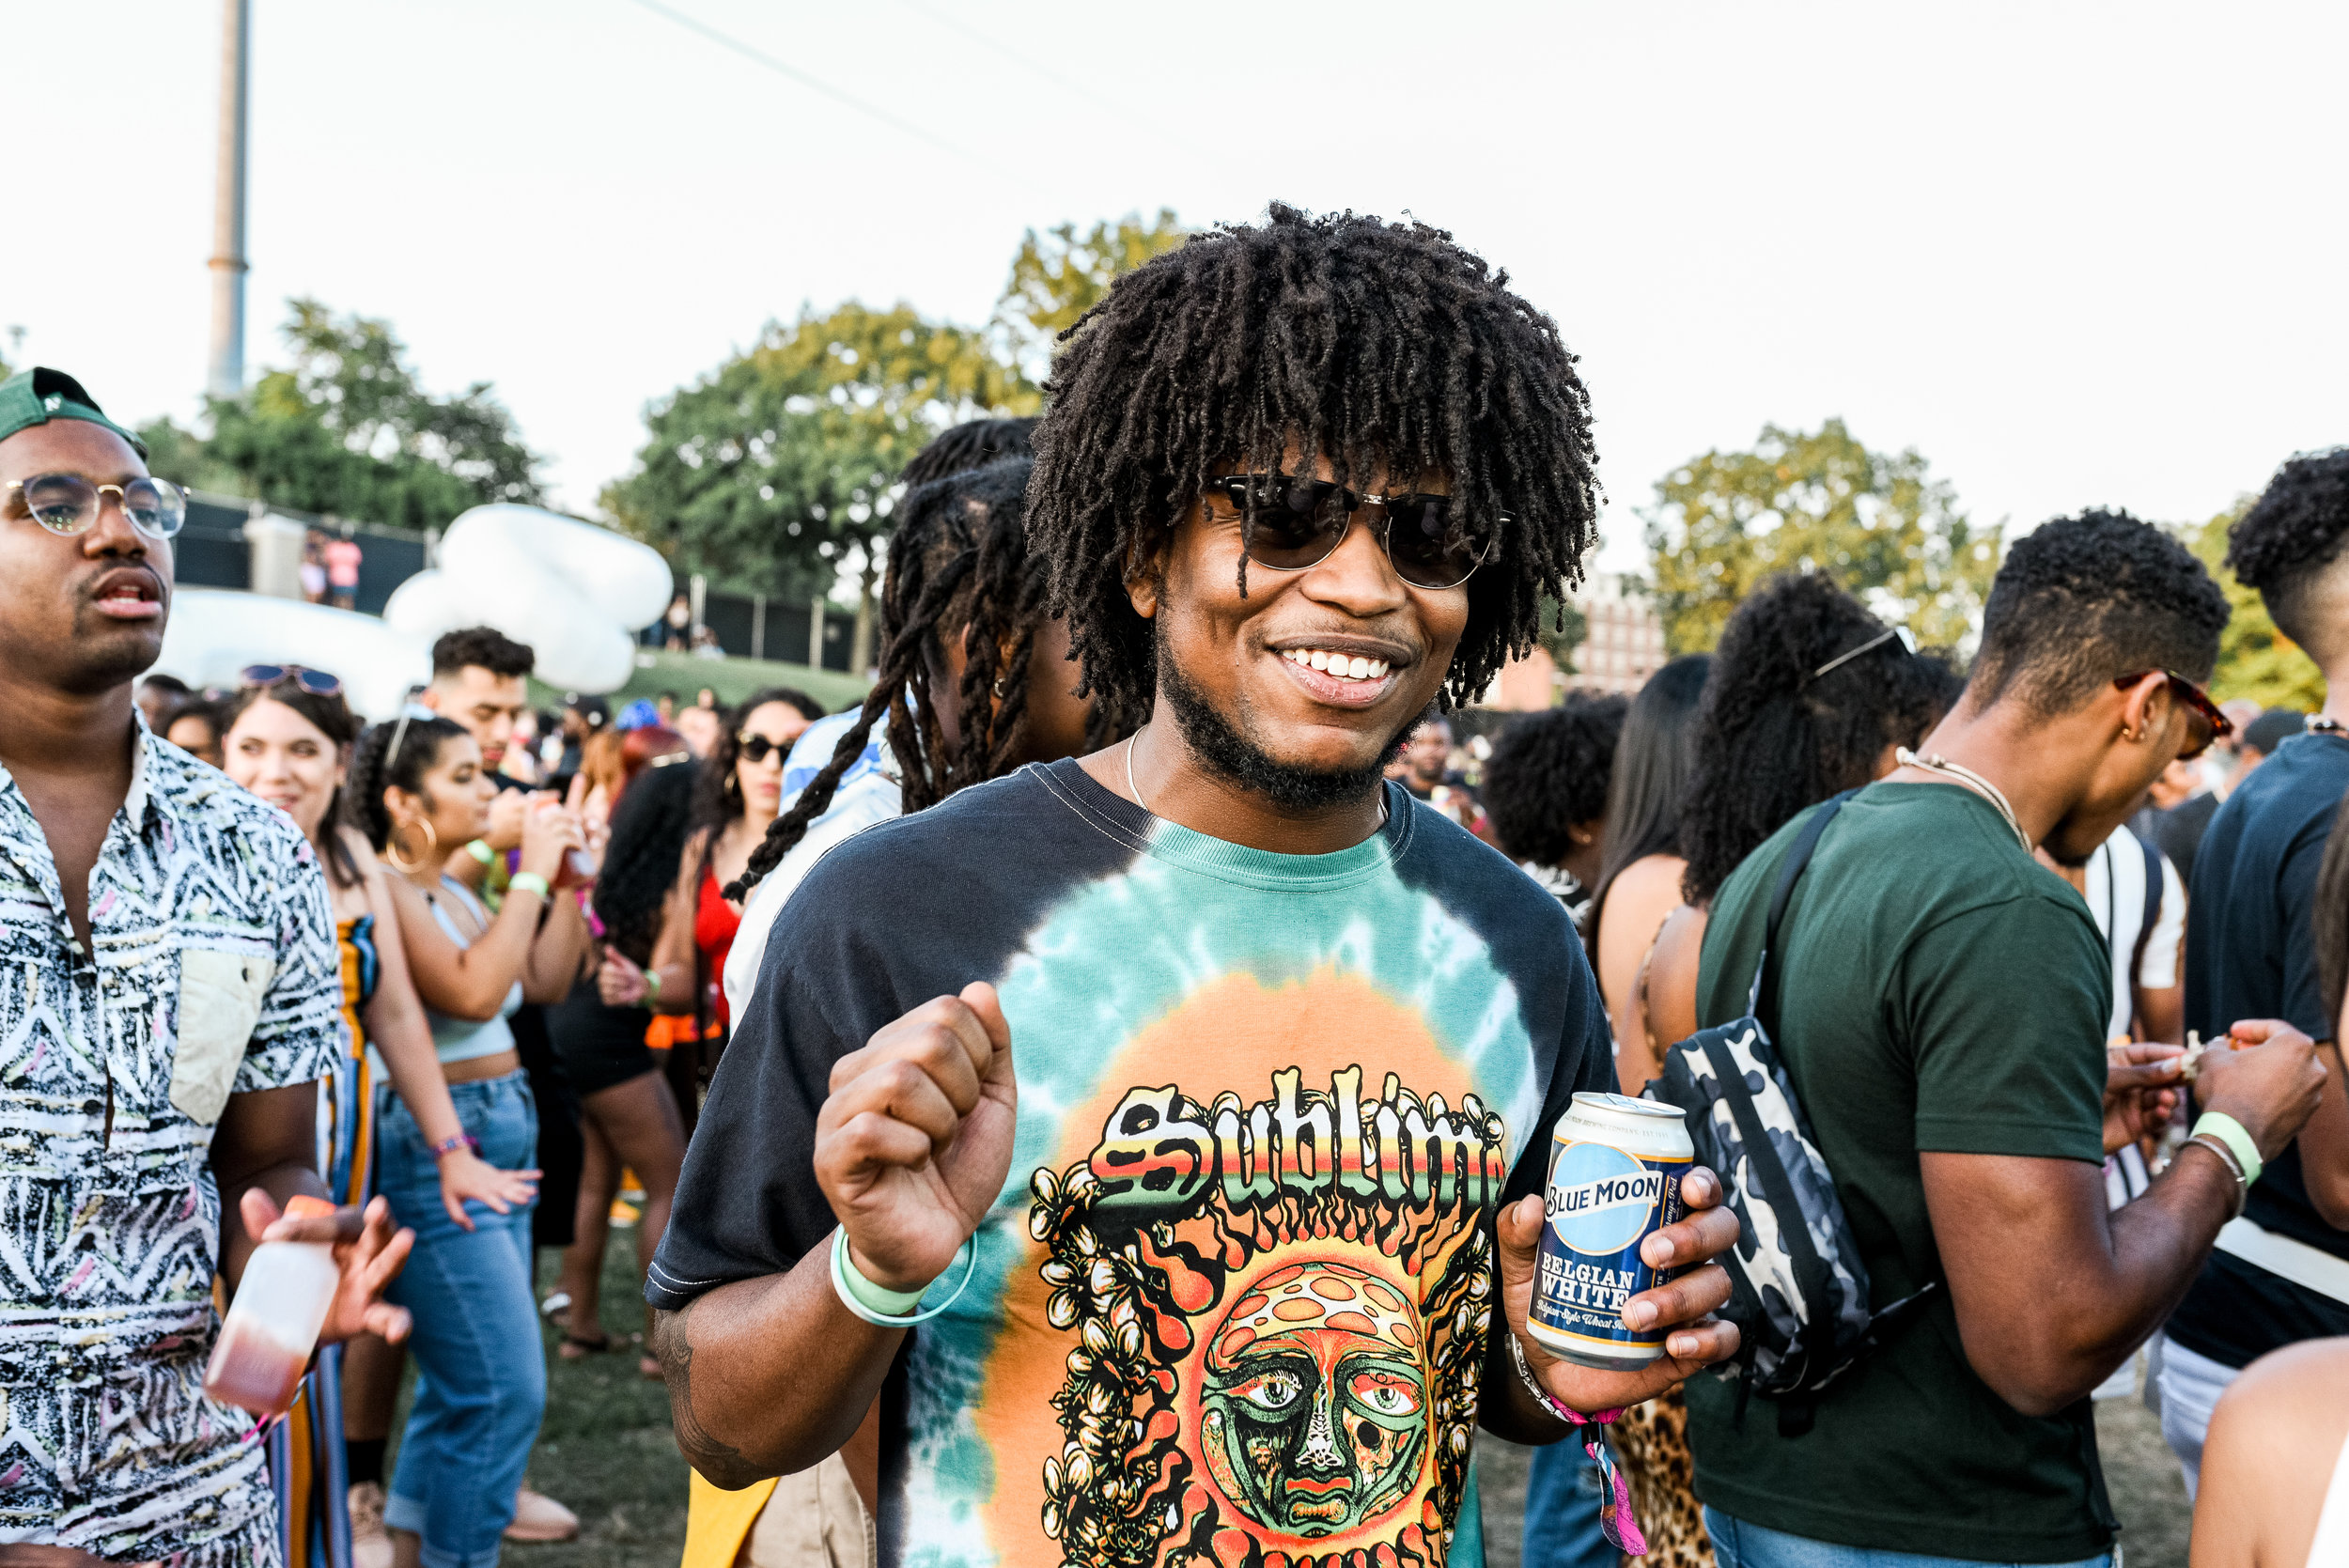 AUG_DAYTRILL (113 of 241).jpg